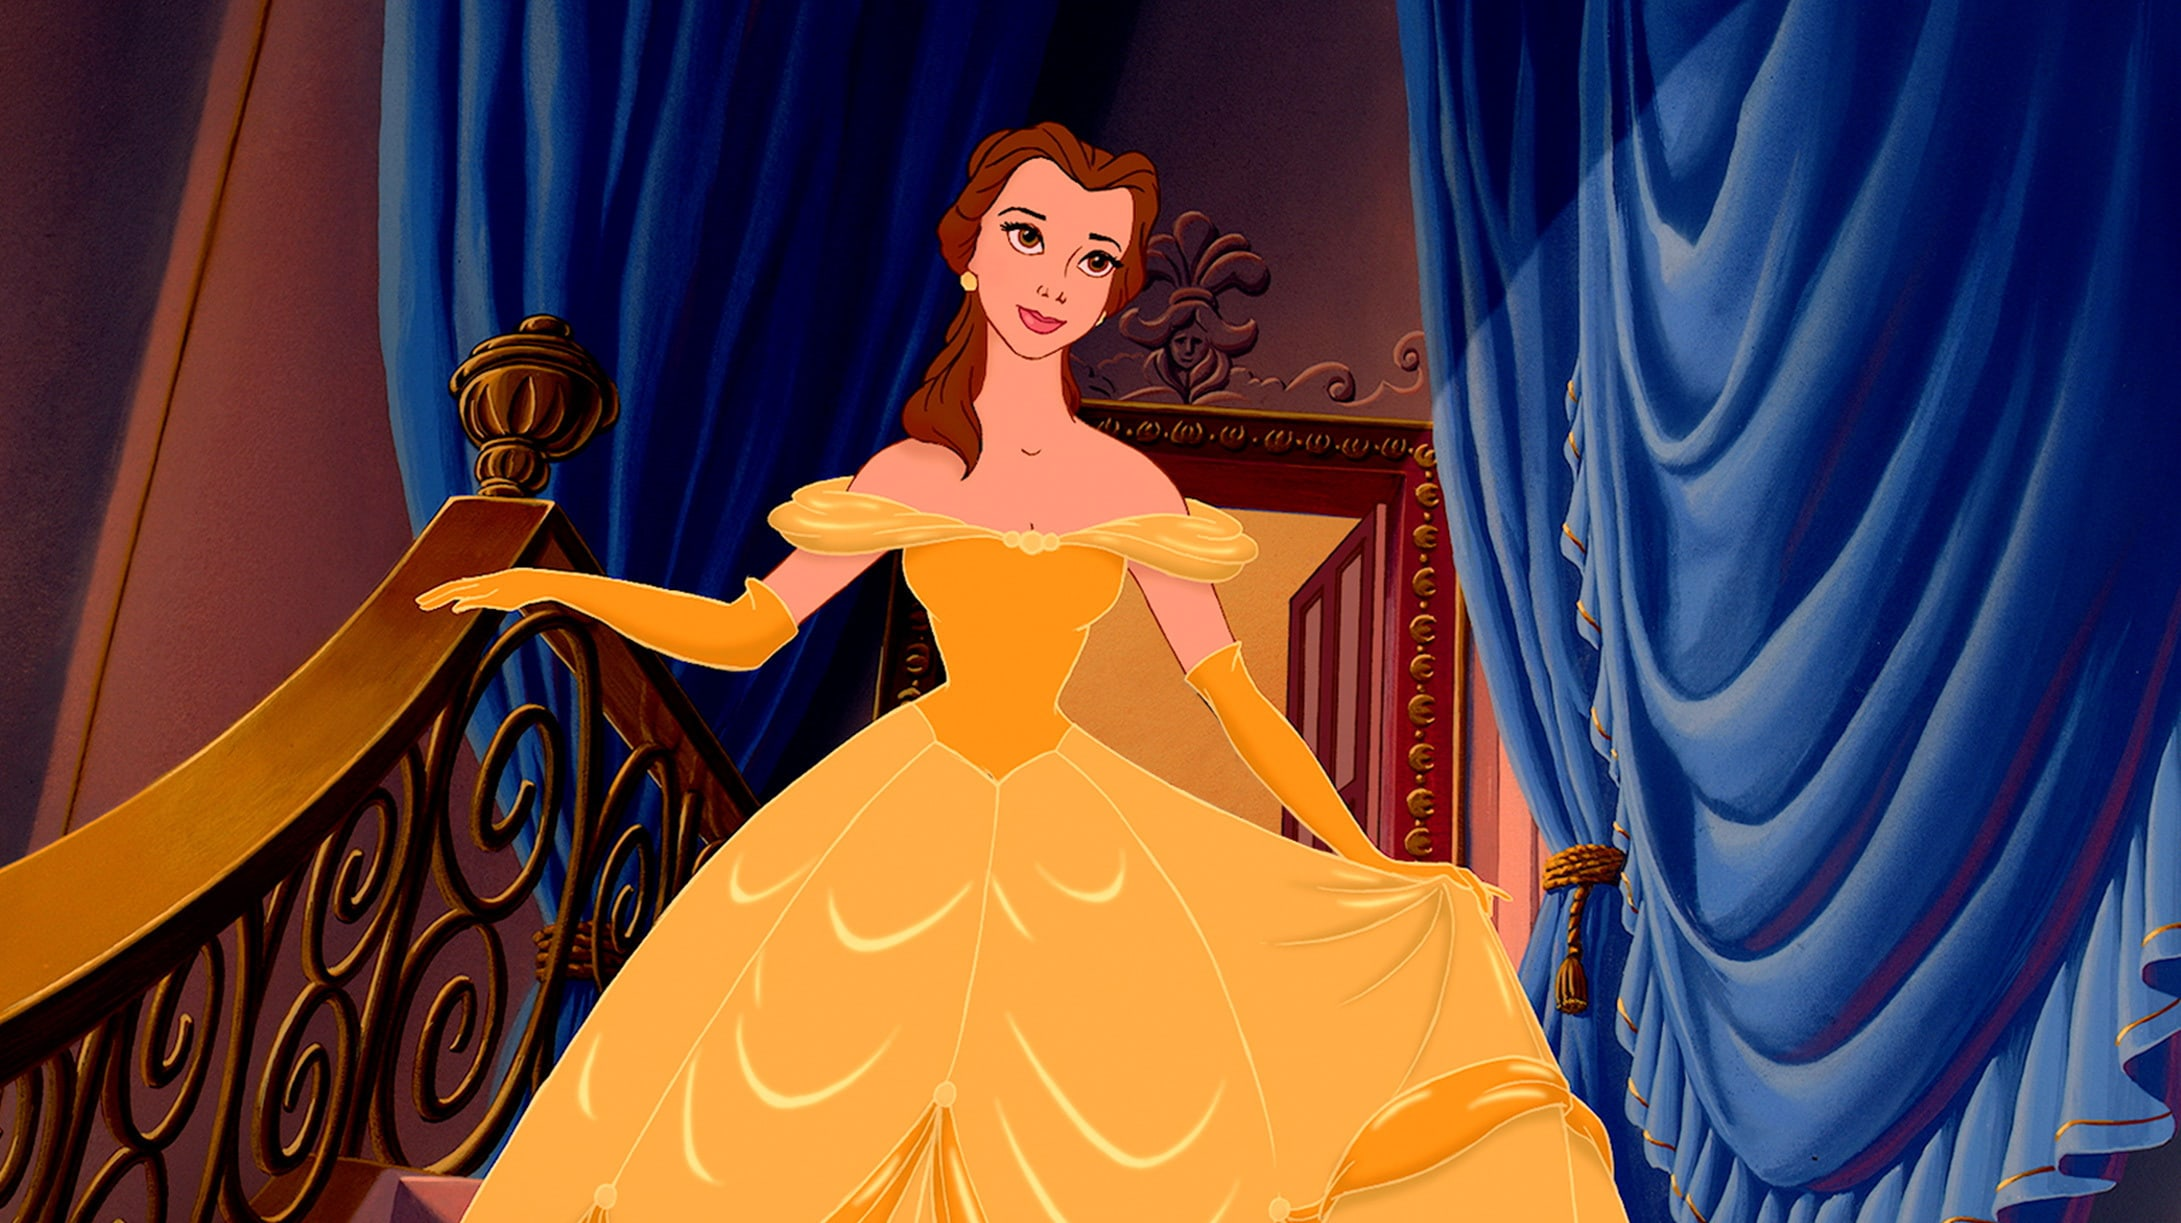 Disney princess Belle in her yellow dress.